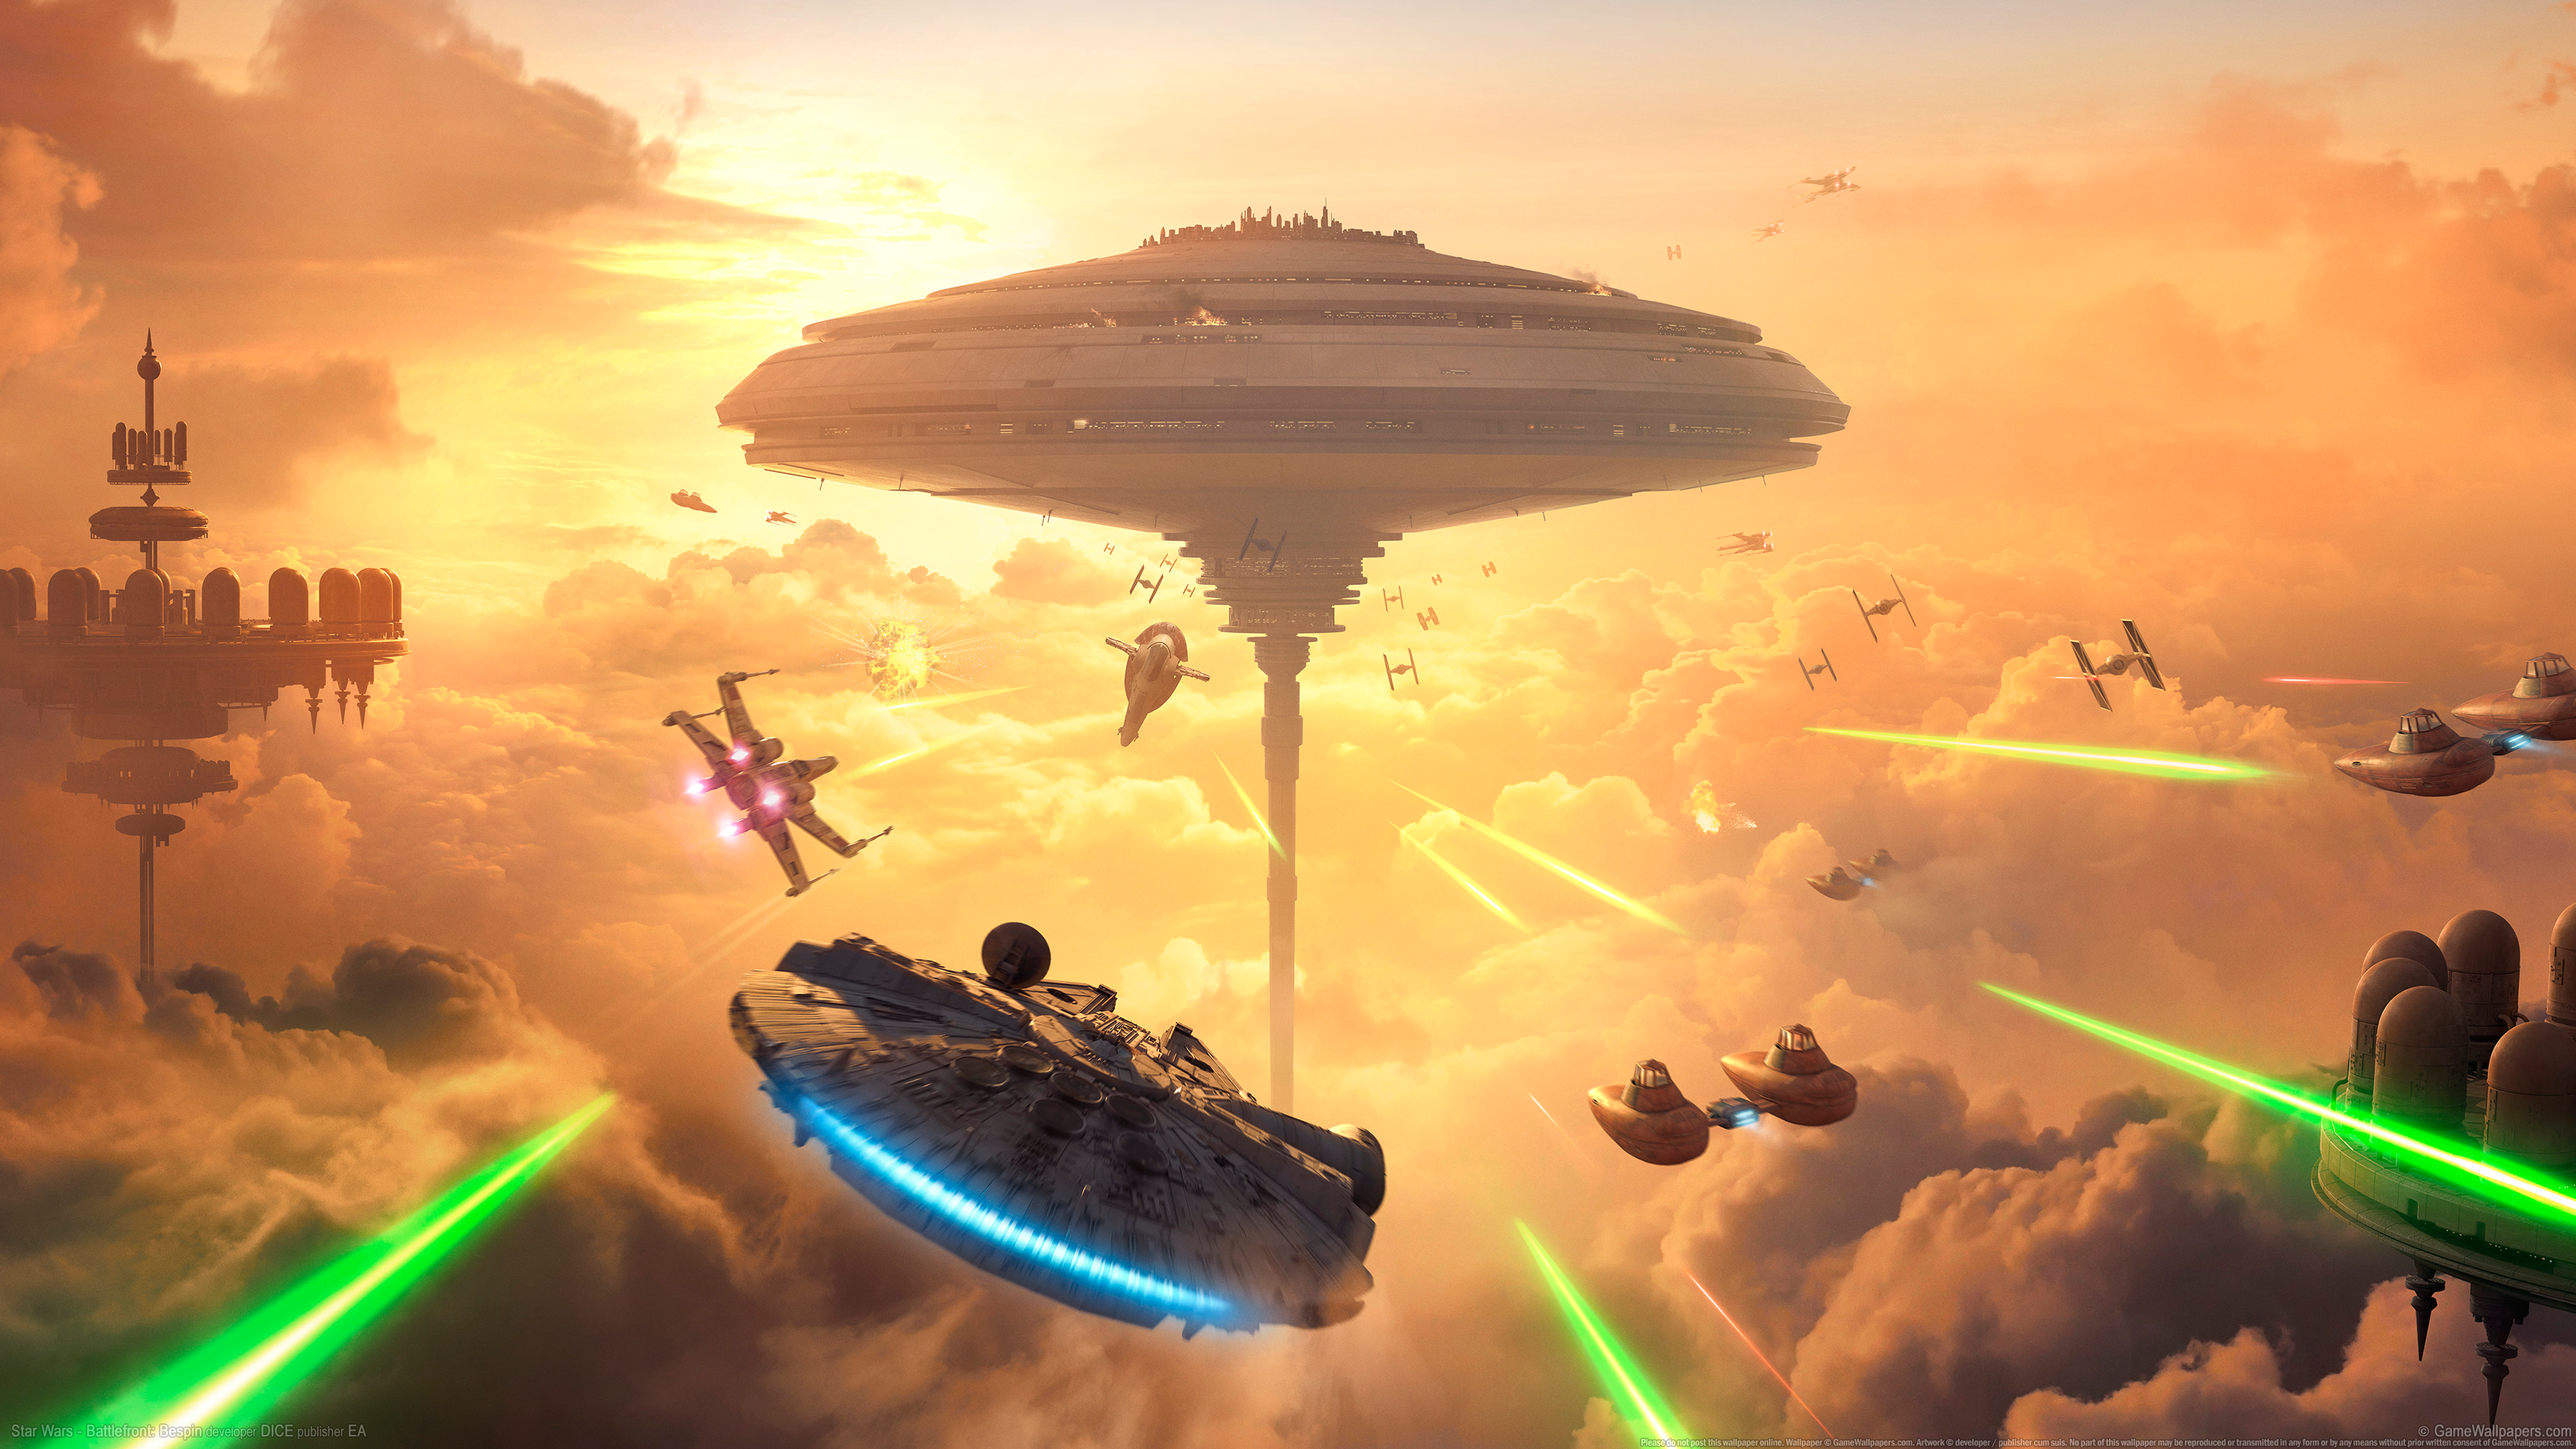 19015 Bespin wallpapers backgrounds 2019 3840x2160